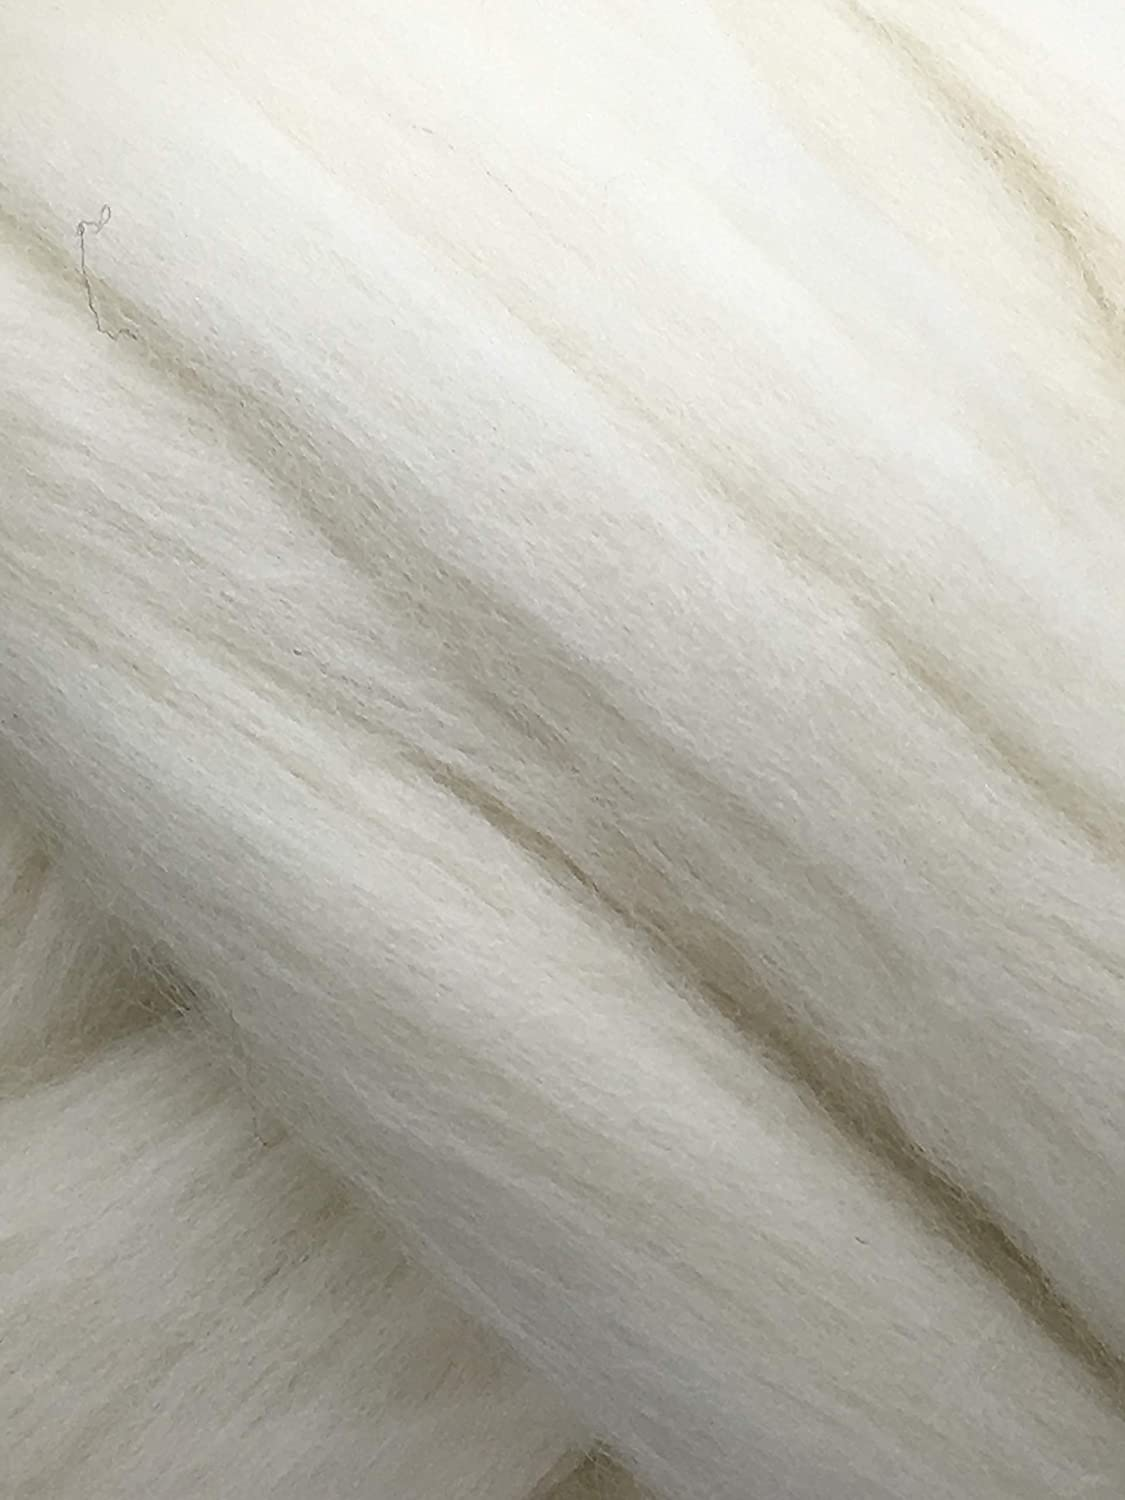 SUPER SALE 1 lb POUND Natural White Wool Top Roving Fiber Spin, Felt Crafts LUXURIOUS with FAST SHIPPING! 1lb Shep's Wool Roving-White-1lb-56s